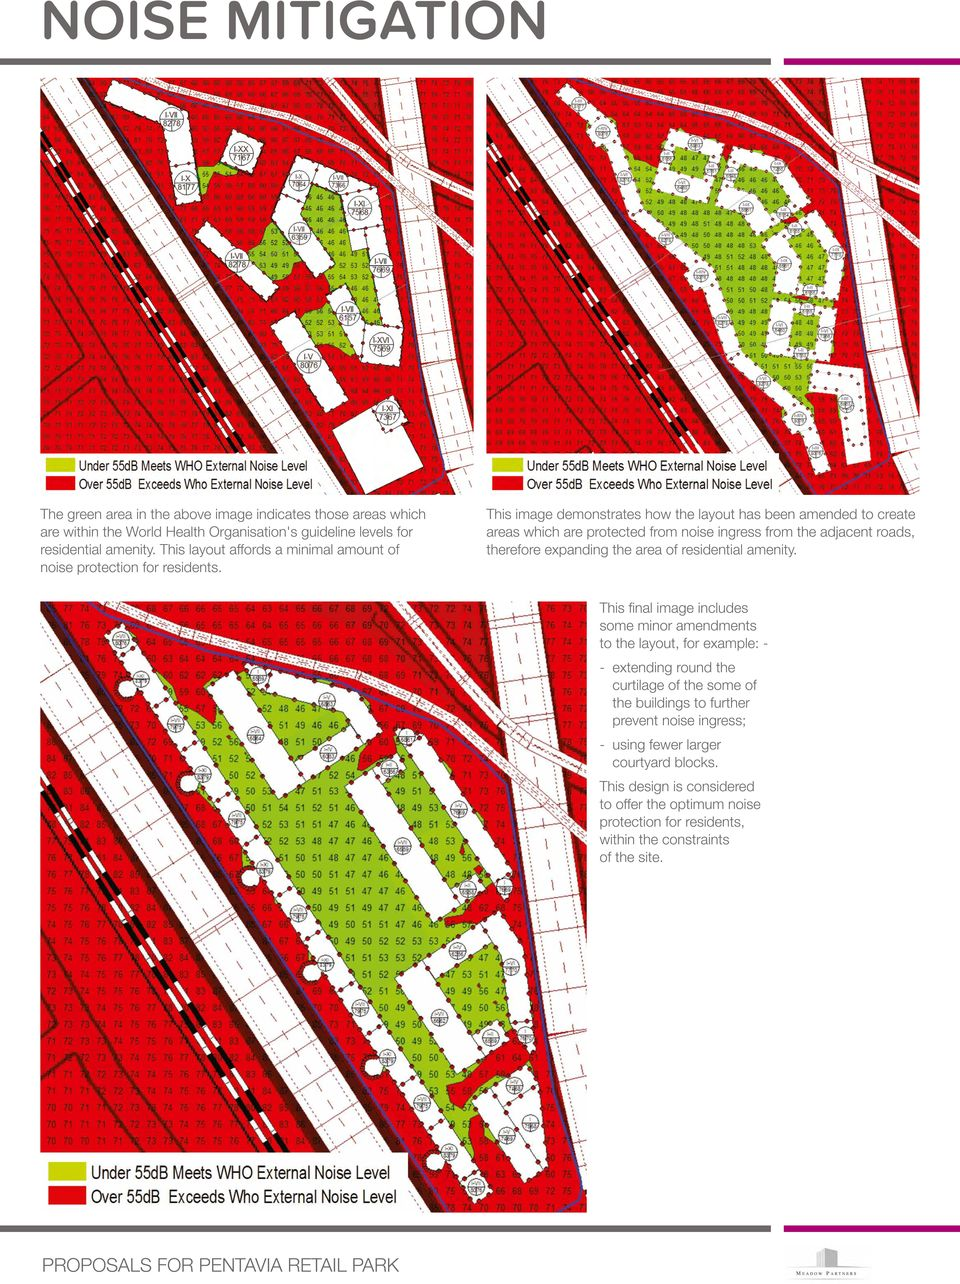 This image demonstrates how the layout has been amended to create areas which are protected from noise ingress from the adjacent roads, therefore expanding the area of residential amenity.